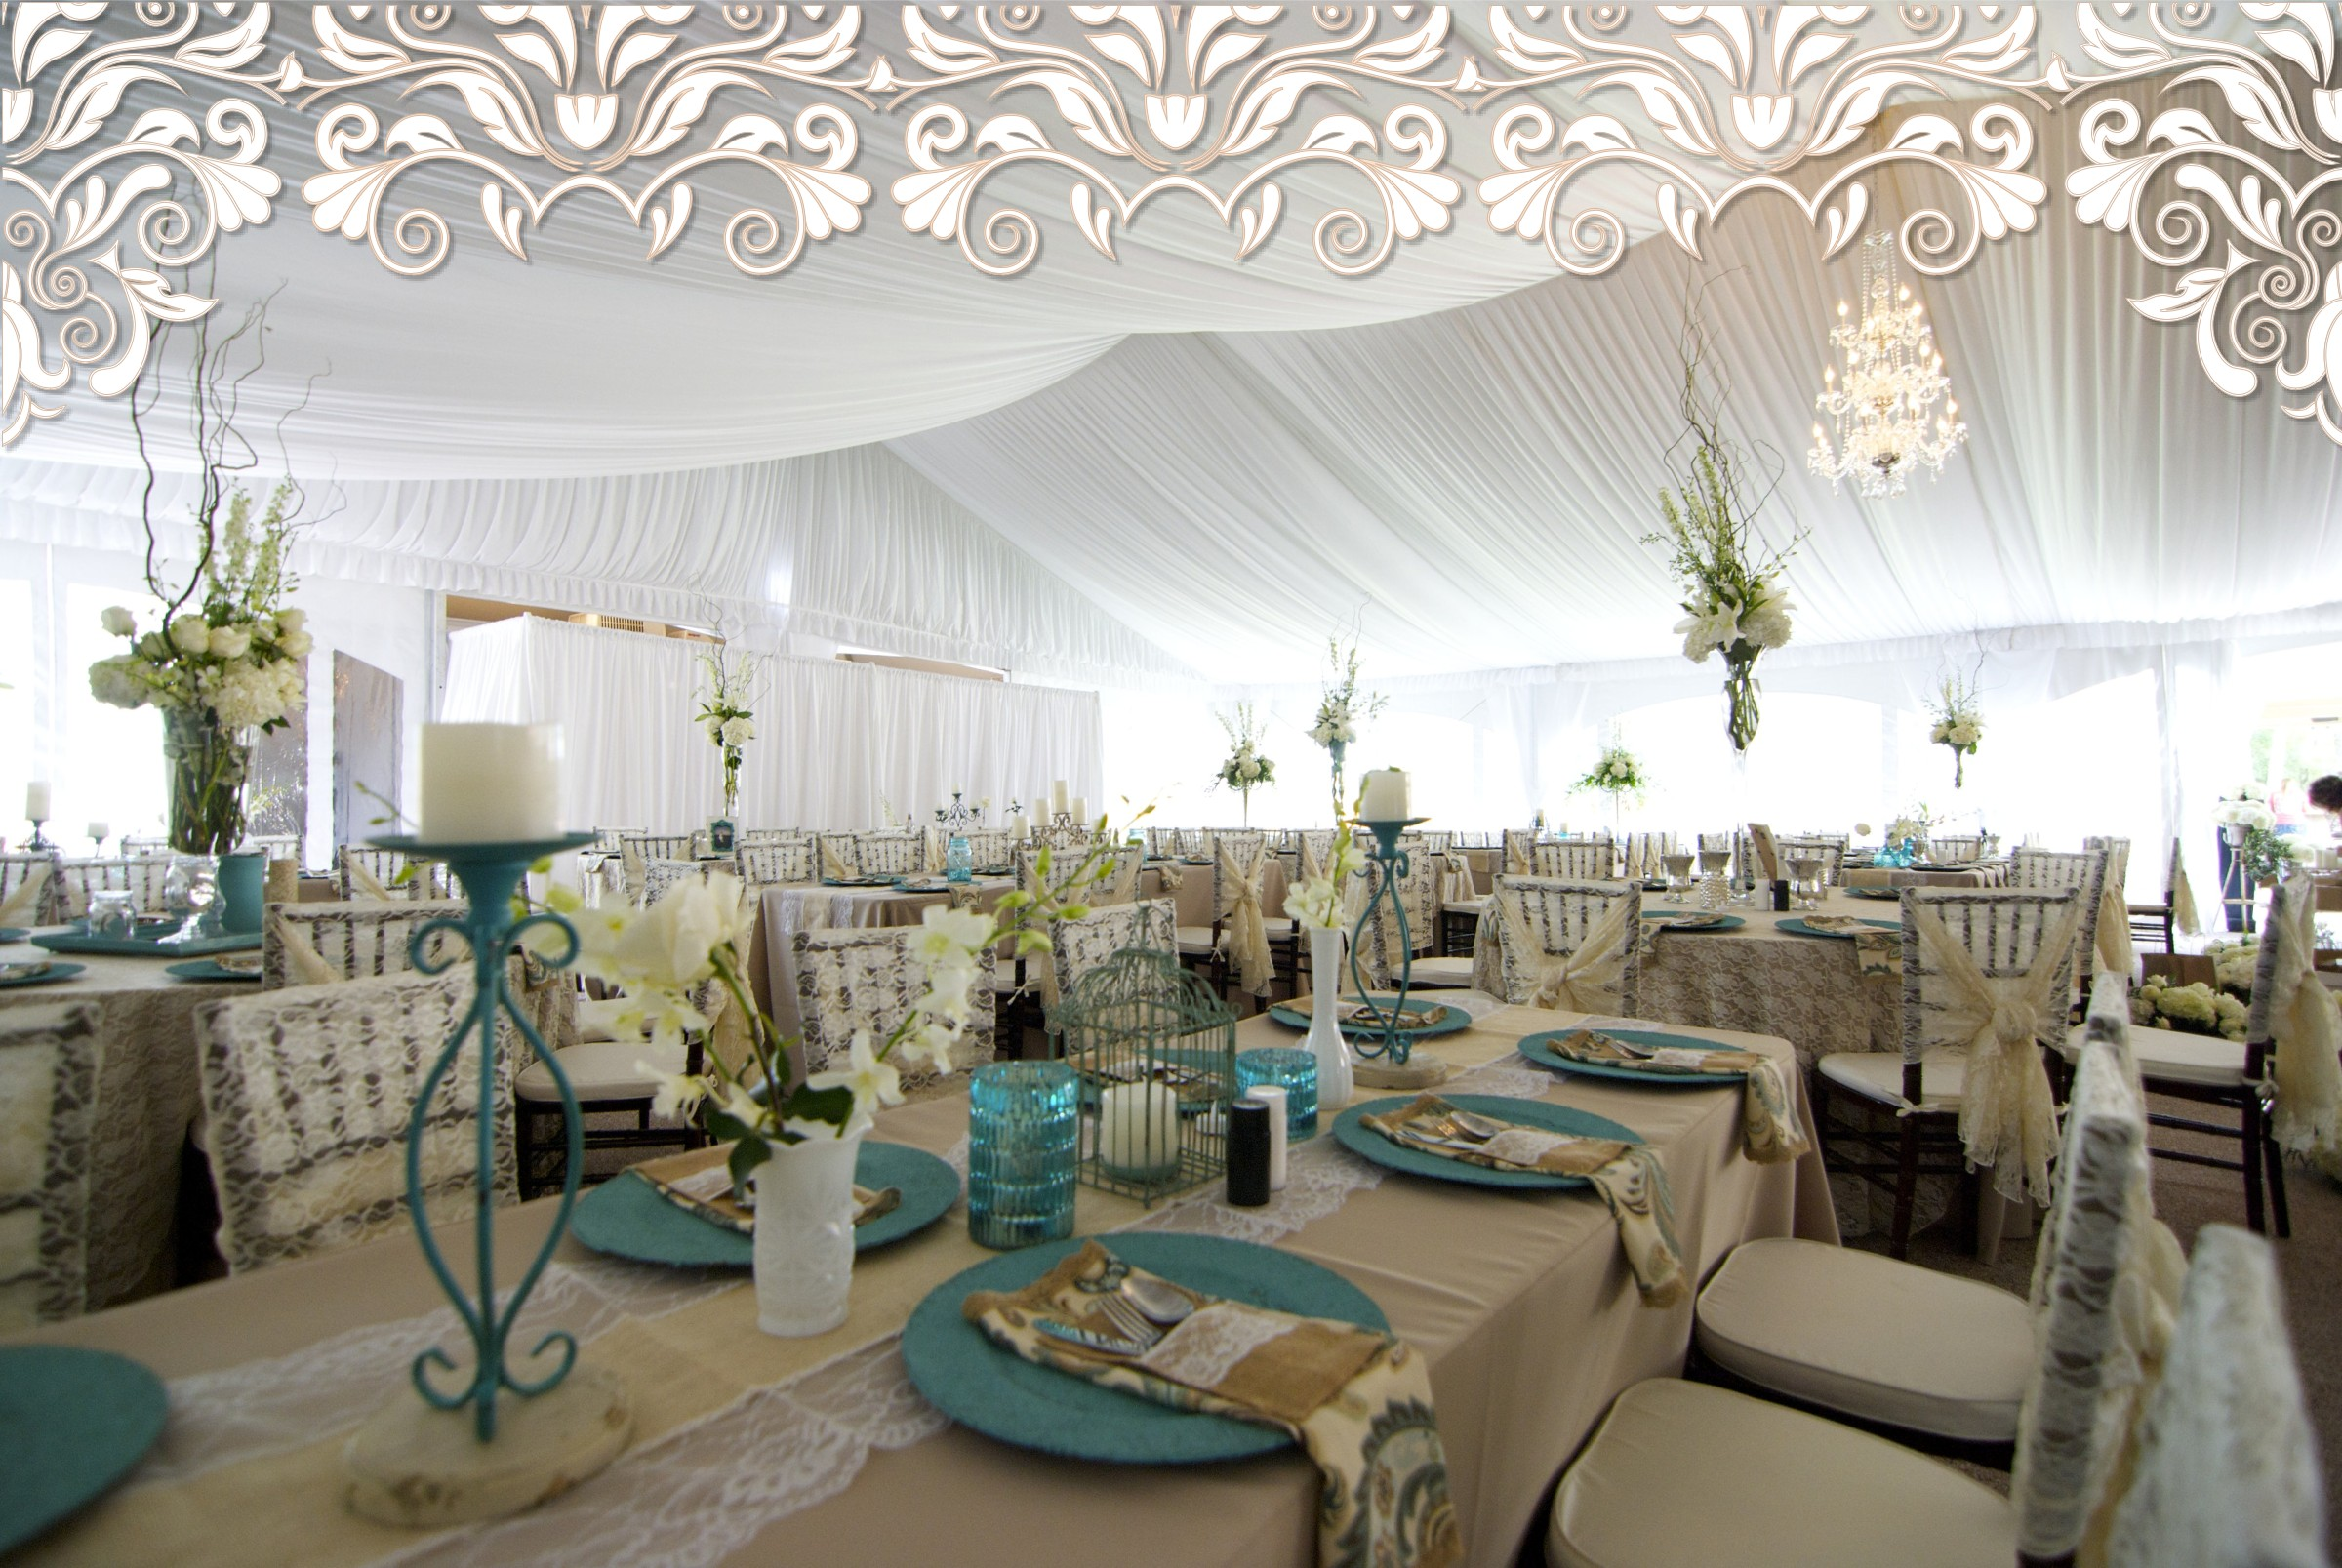 Wedding-Tent-with-Liner1